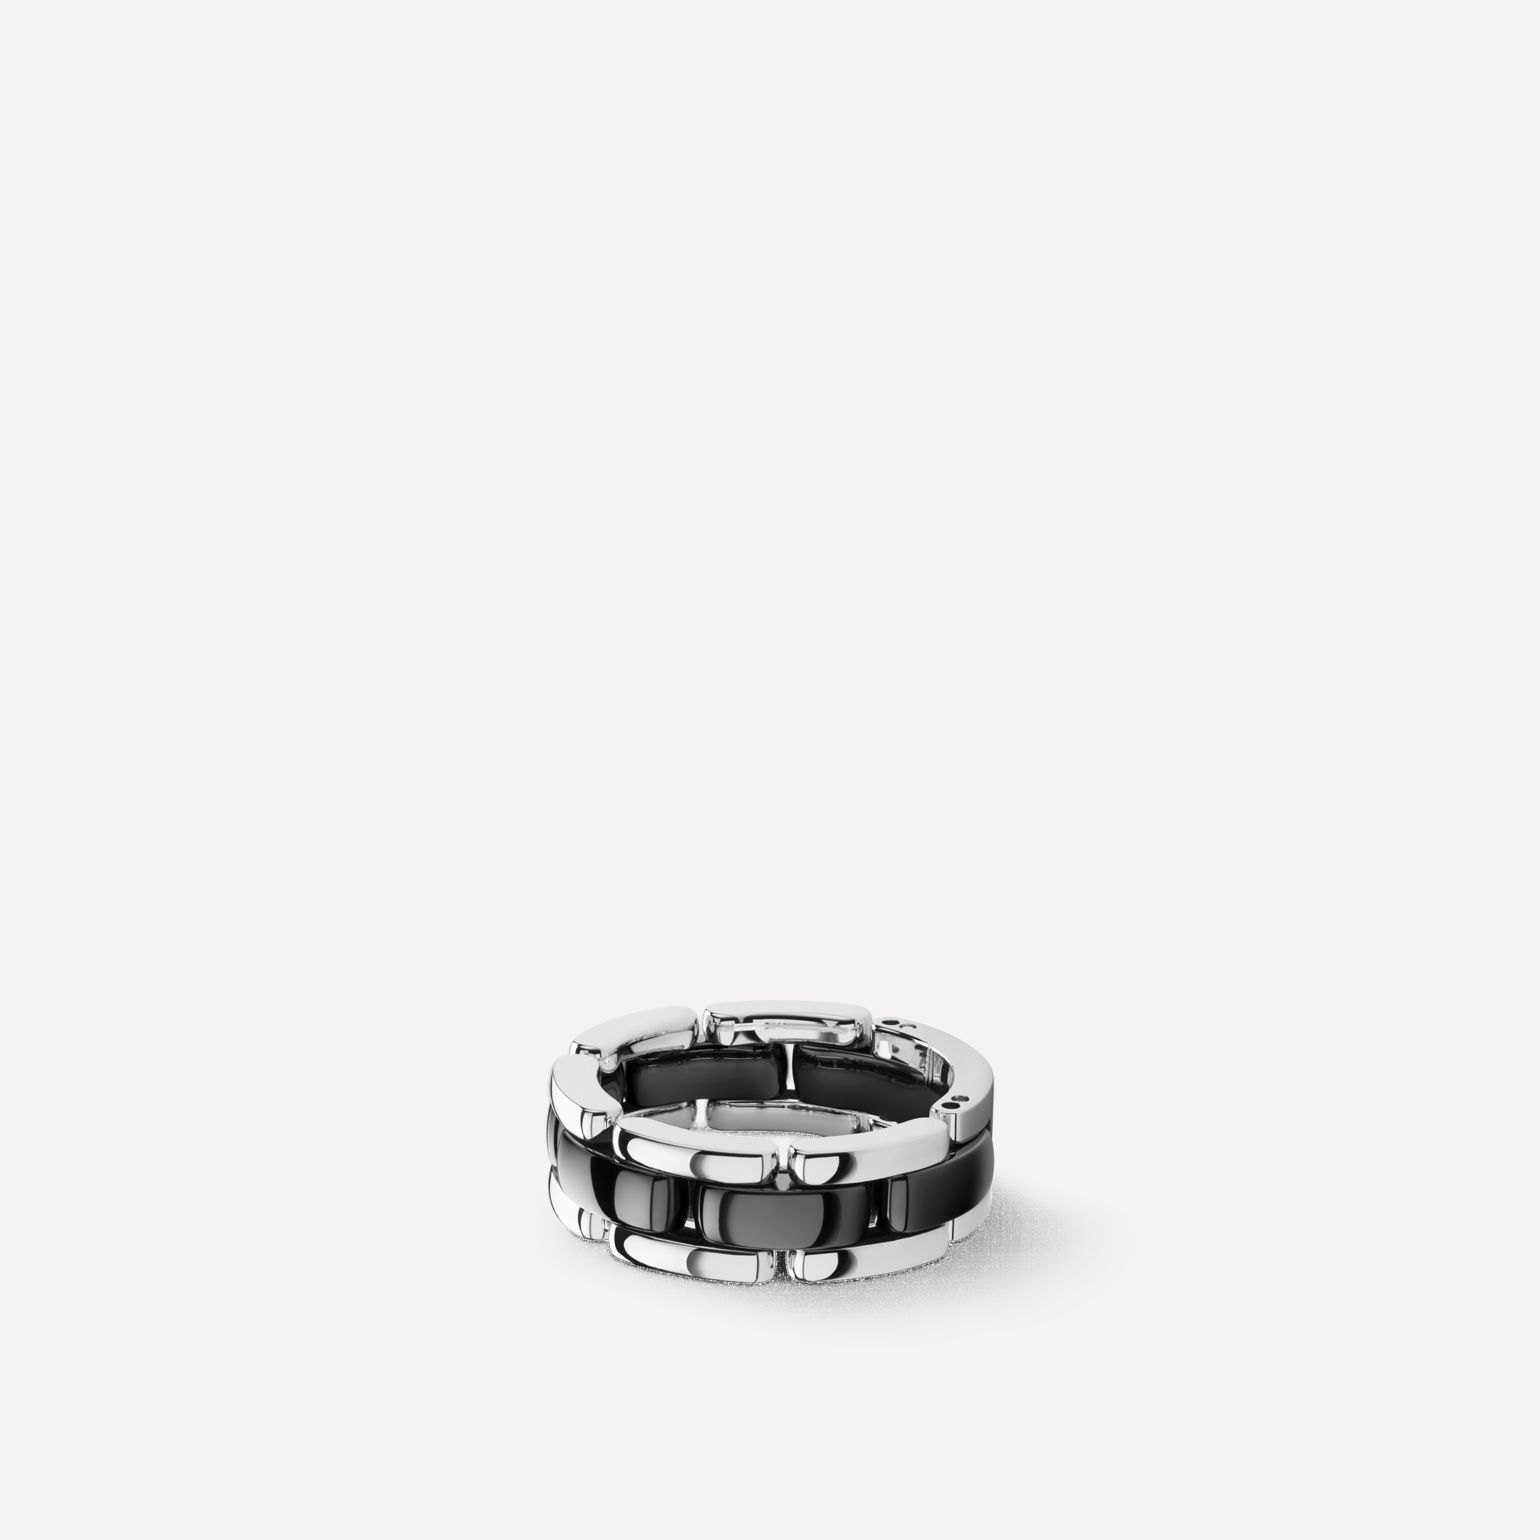 Ultra Ring Ultra ring in black ceramic and 18K white gold. Medium, flexible version.